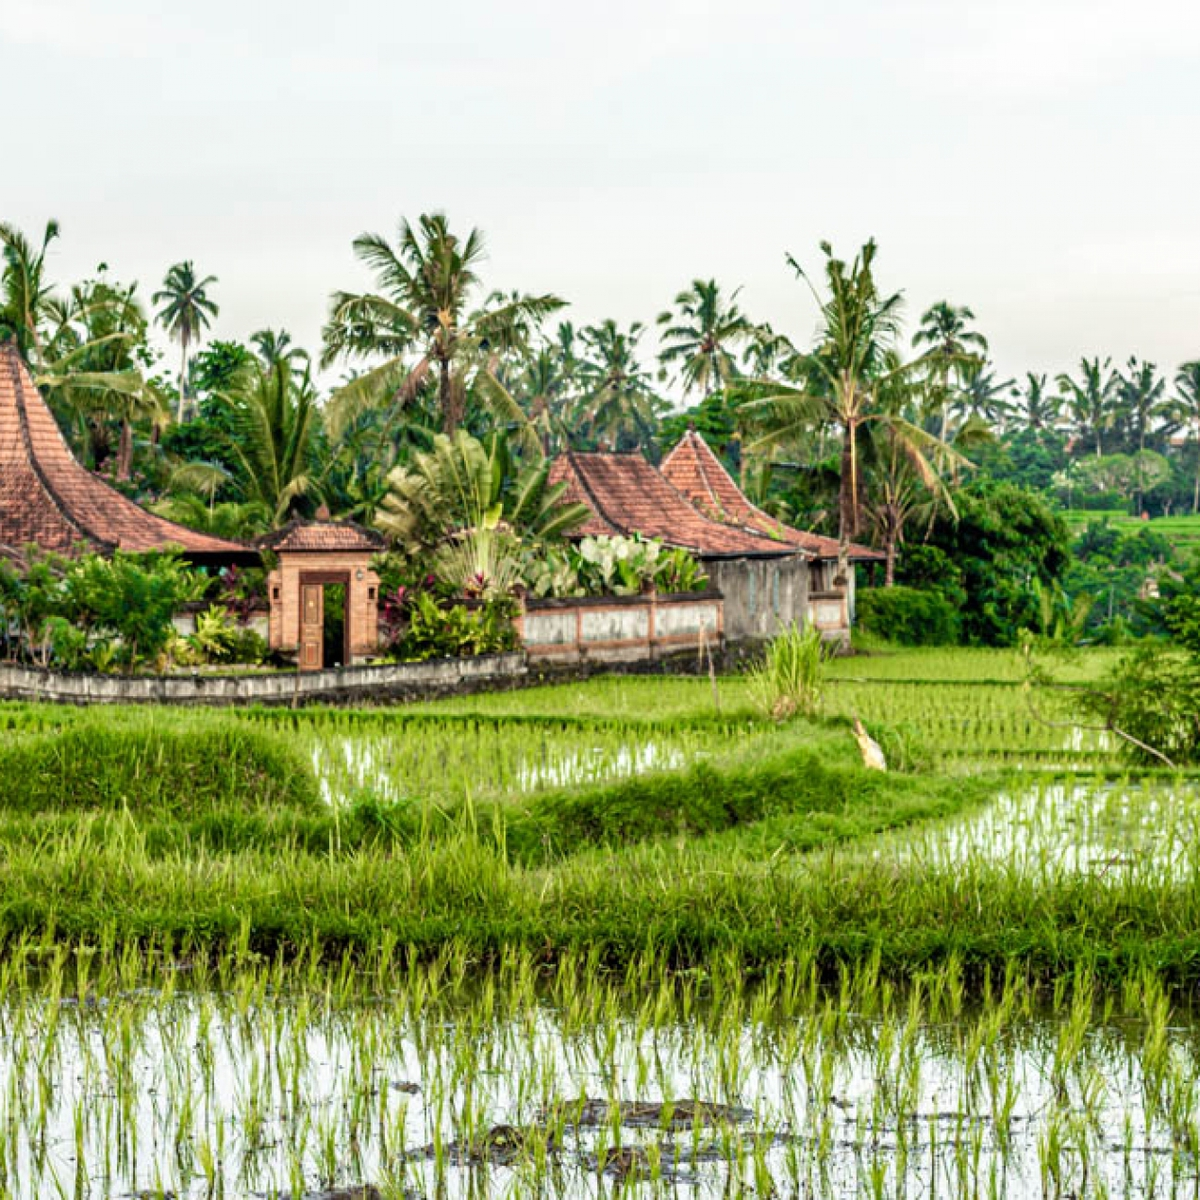 The Ultimate Bali 10 Day Itinerary: All The Must-Sees You Want To Visit